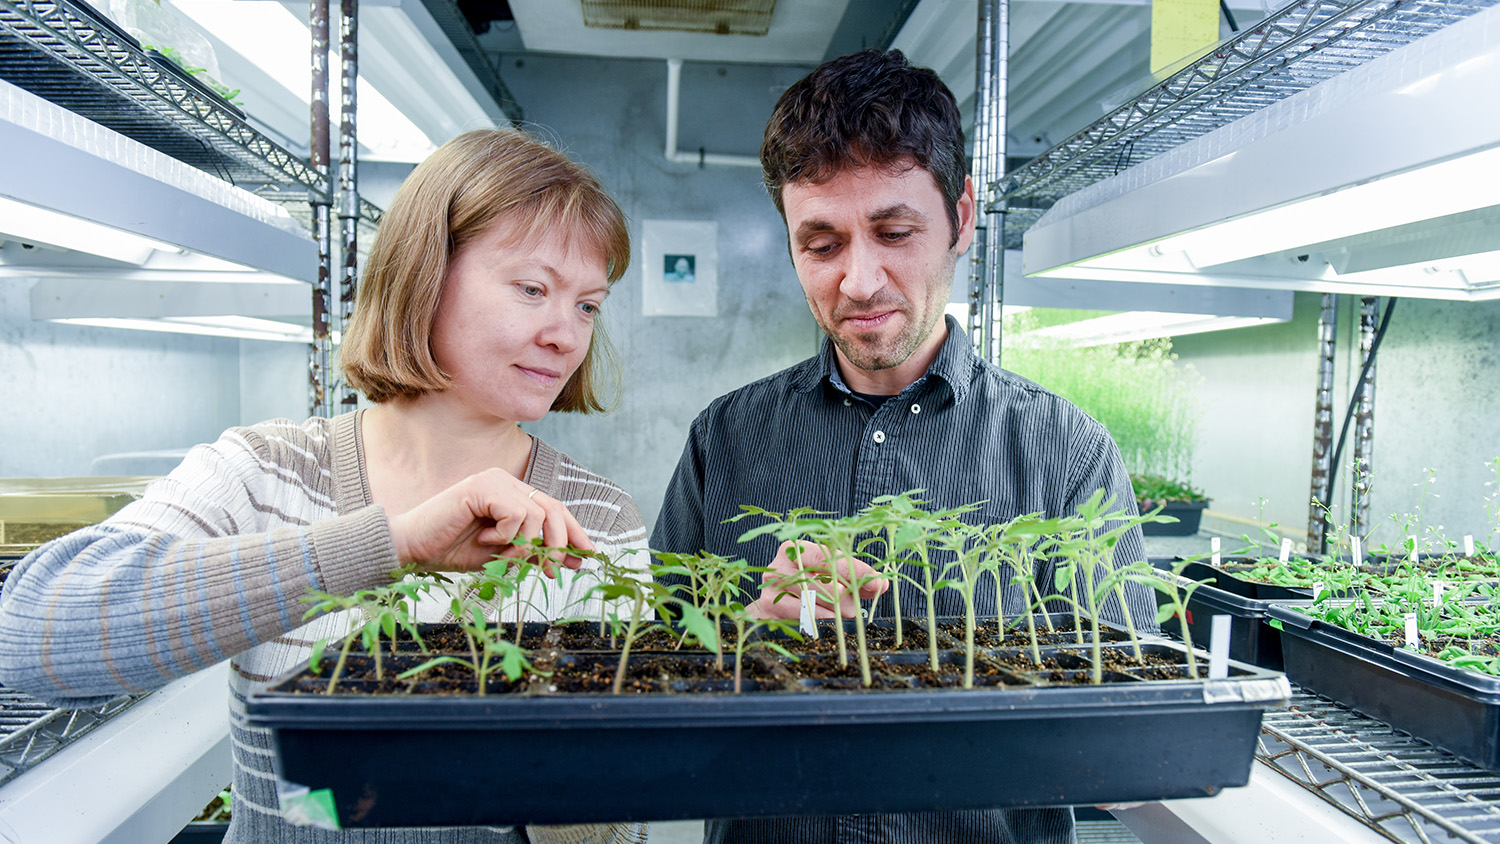 Two researchers in chamber holding a tray of tomato seedlings of different heights.